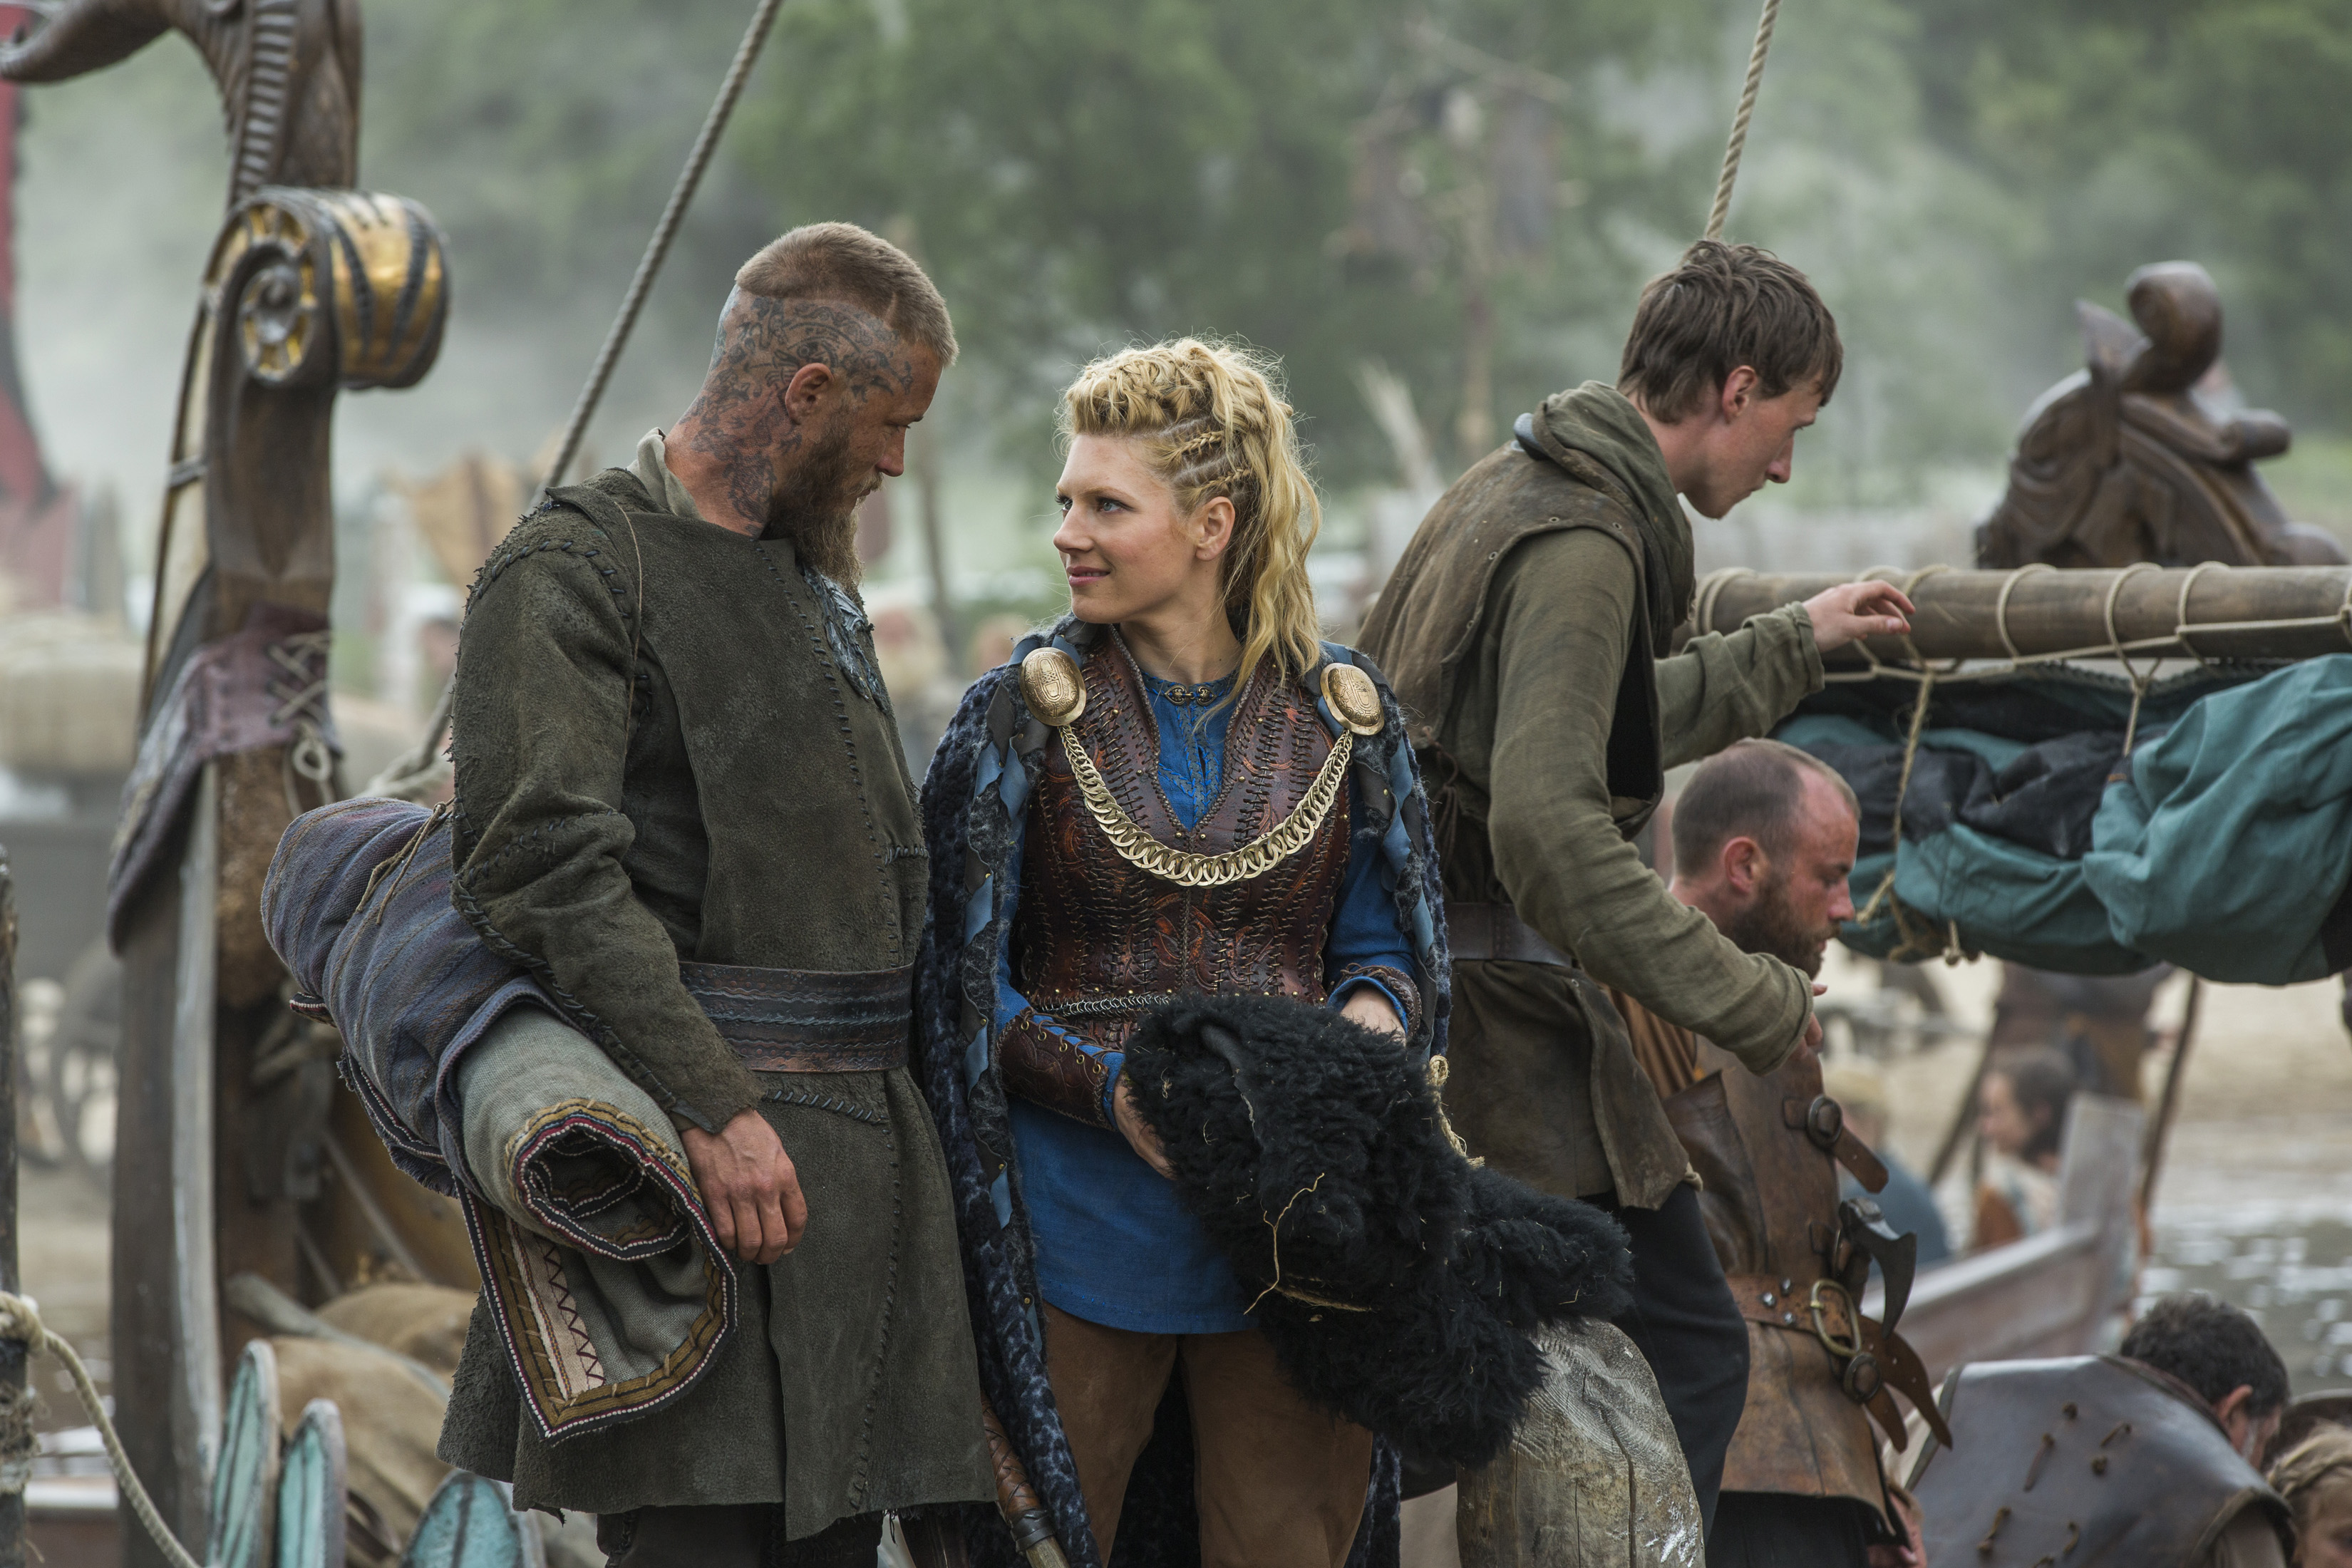 Sneak Peek: New Pics VIKINGS Season 3! Lagertha, Ragnar ...